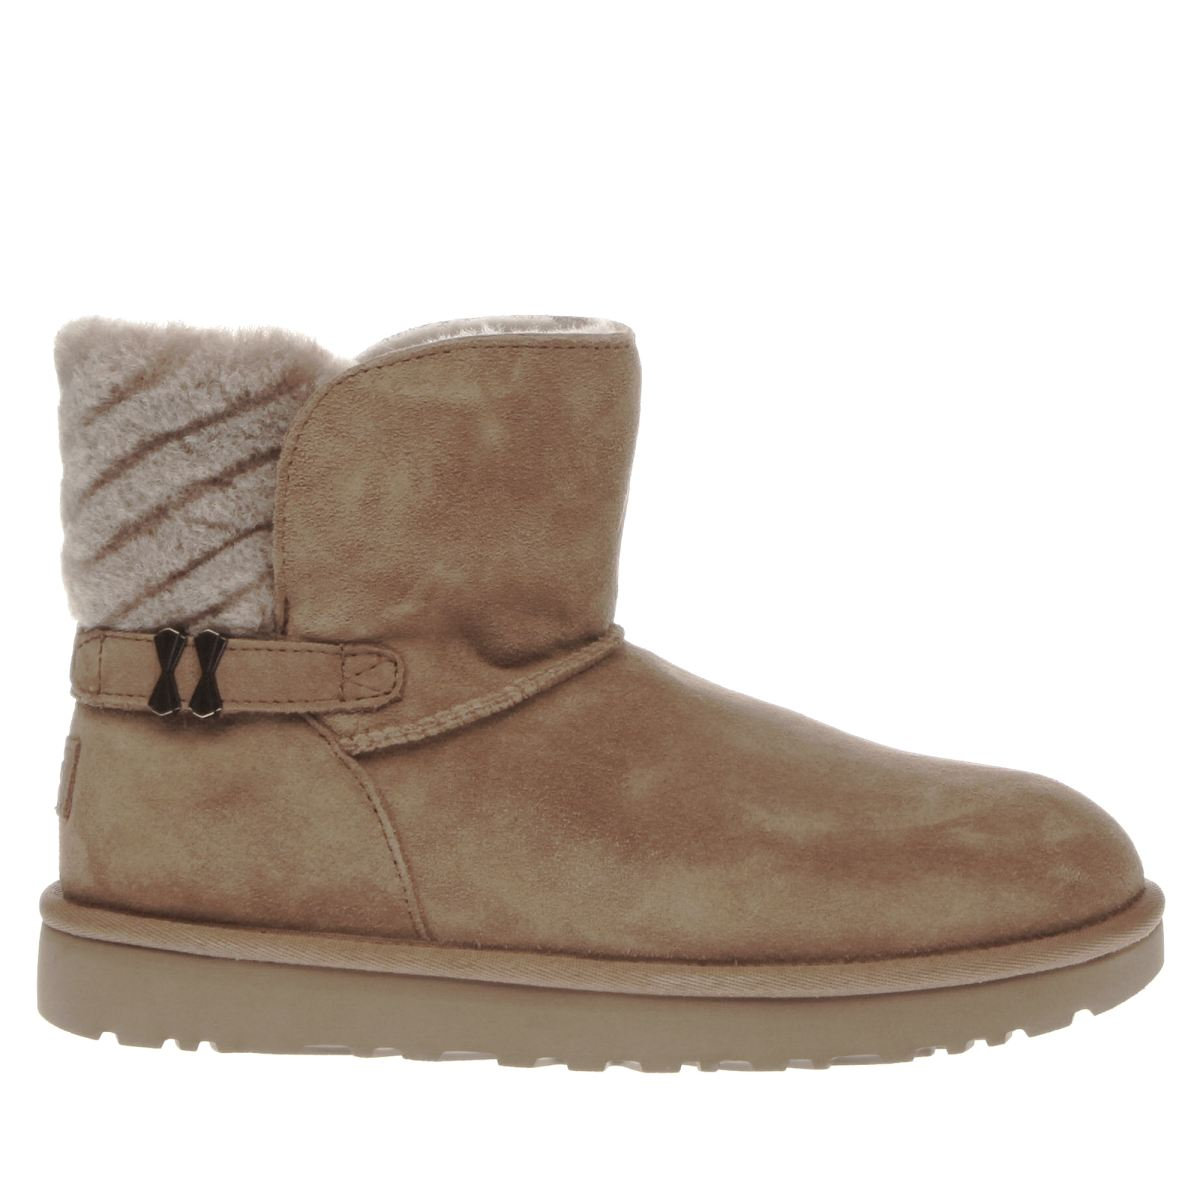 Womens Boots Sale | Timberland, UGG, Dr Martens & More | schuh